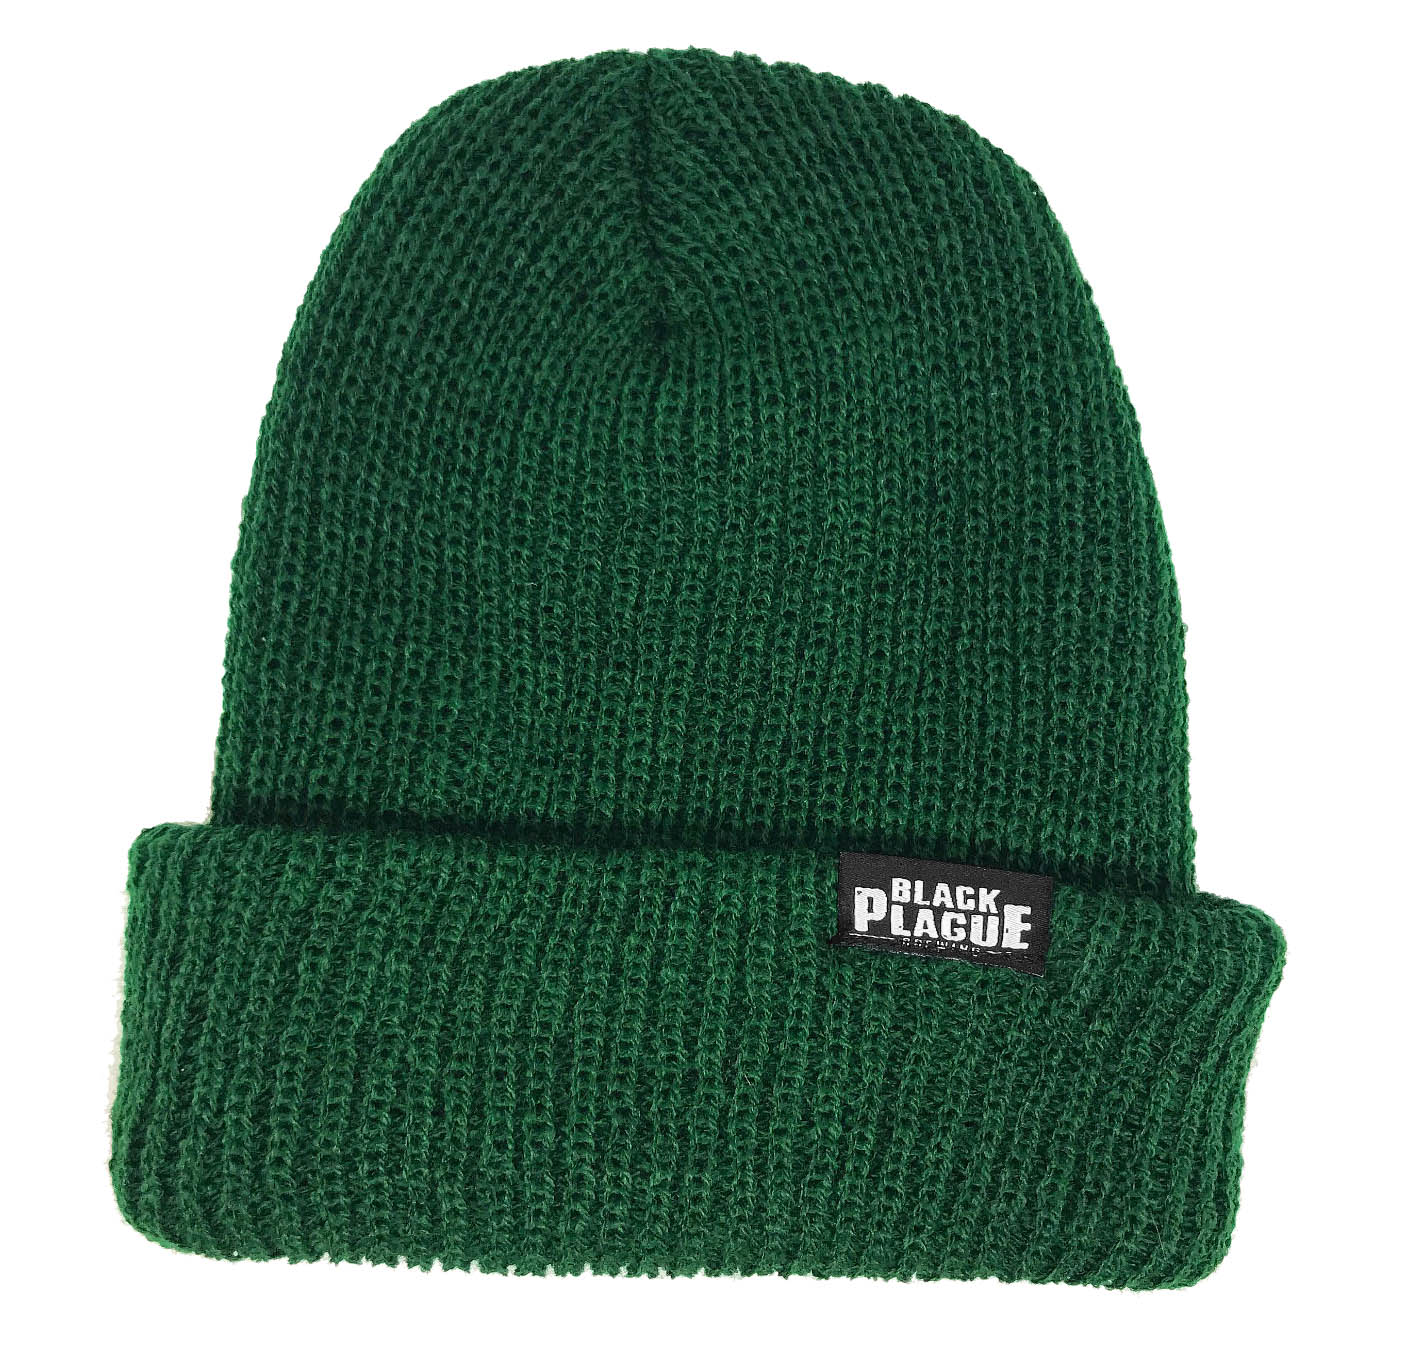 Black Plague Beanie - Forest Green